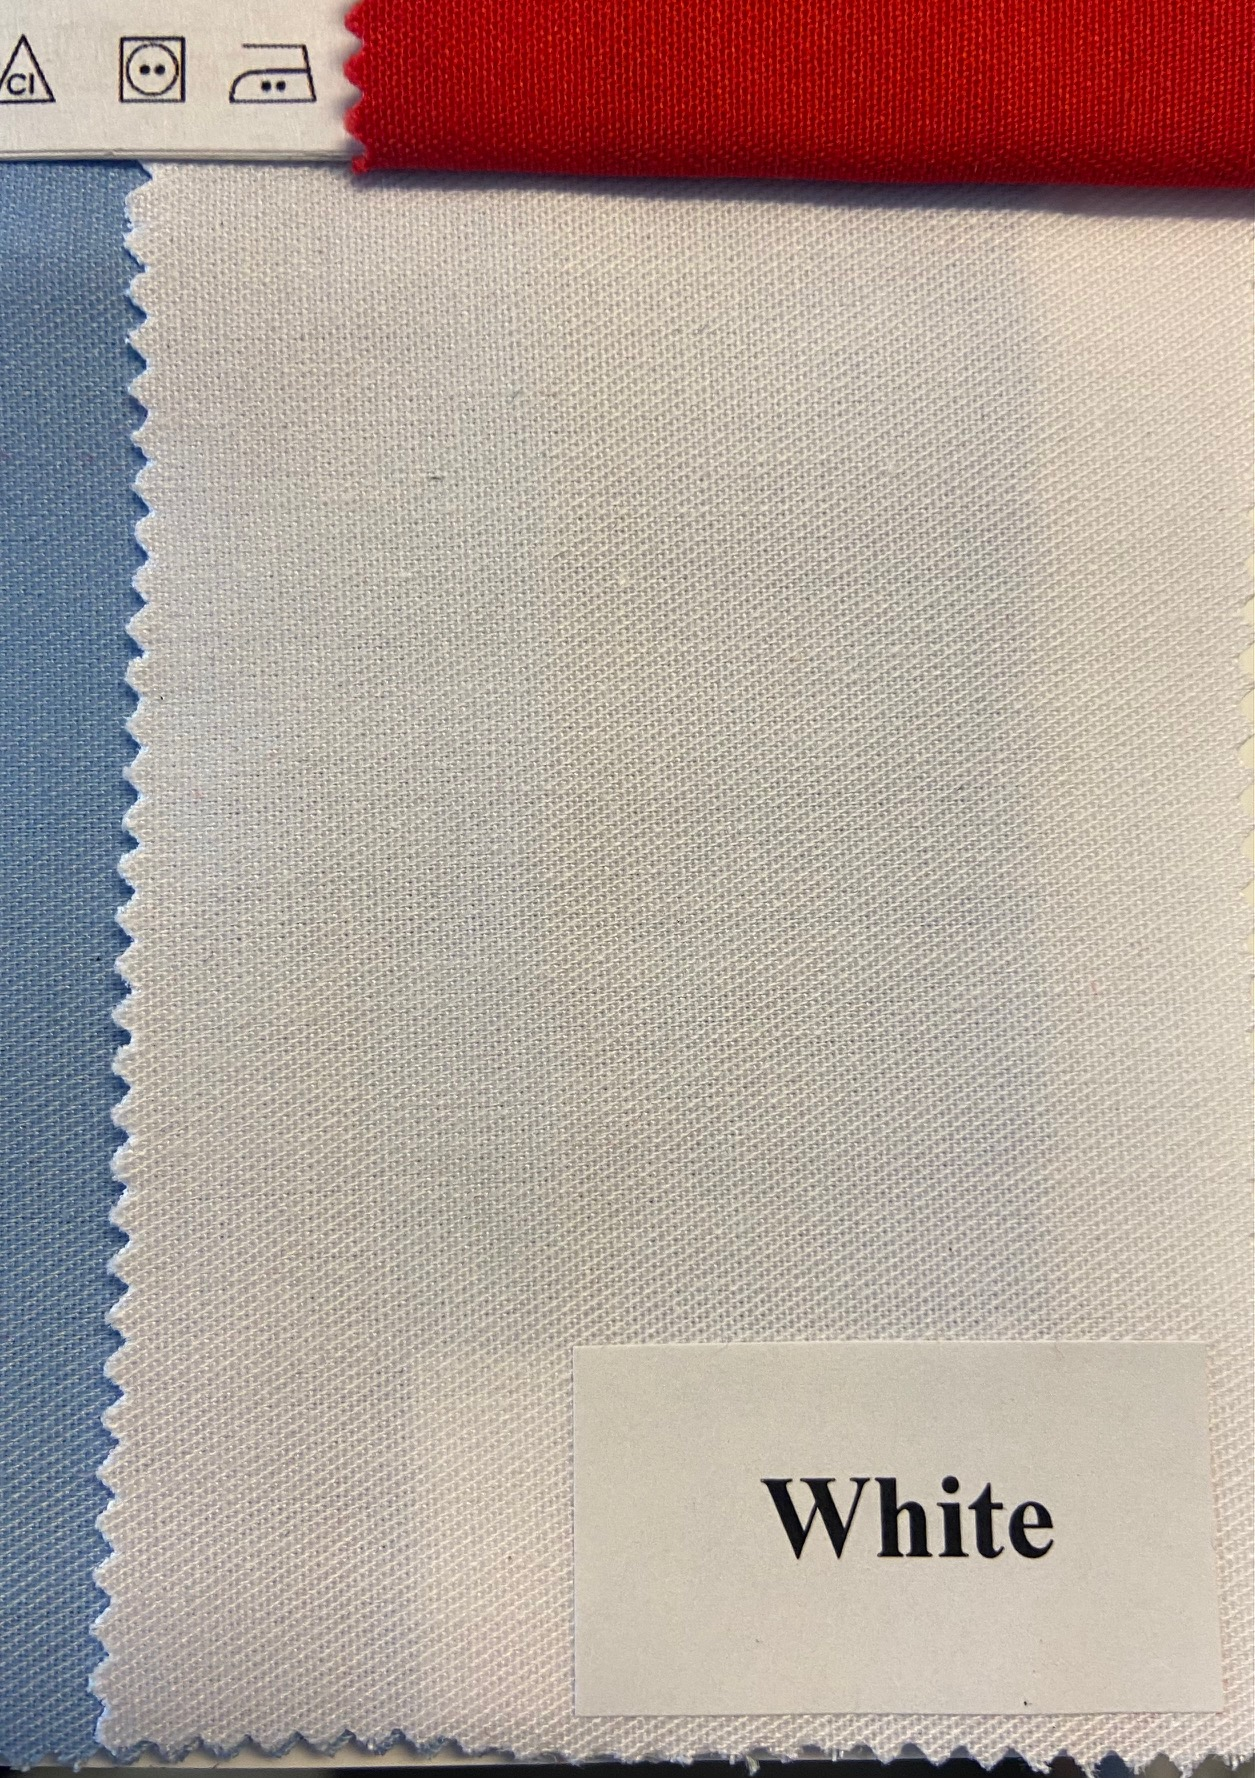 Fabric MEDICAL, White. Width 150cm, weight 195g/m². Price per roll 50m, VAT incl.